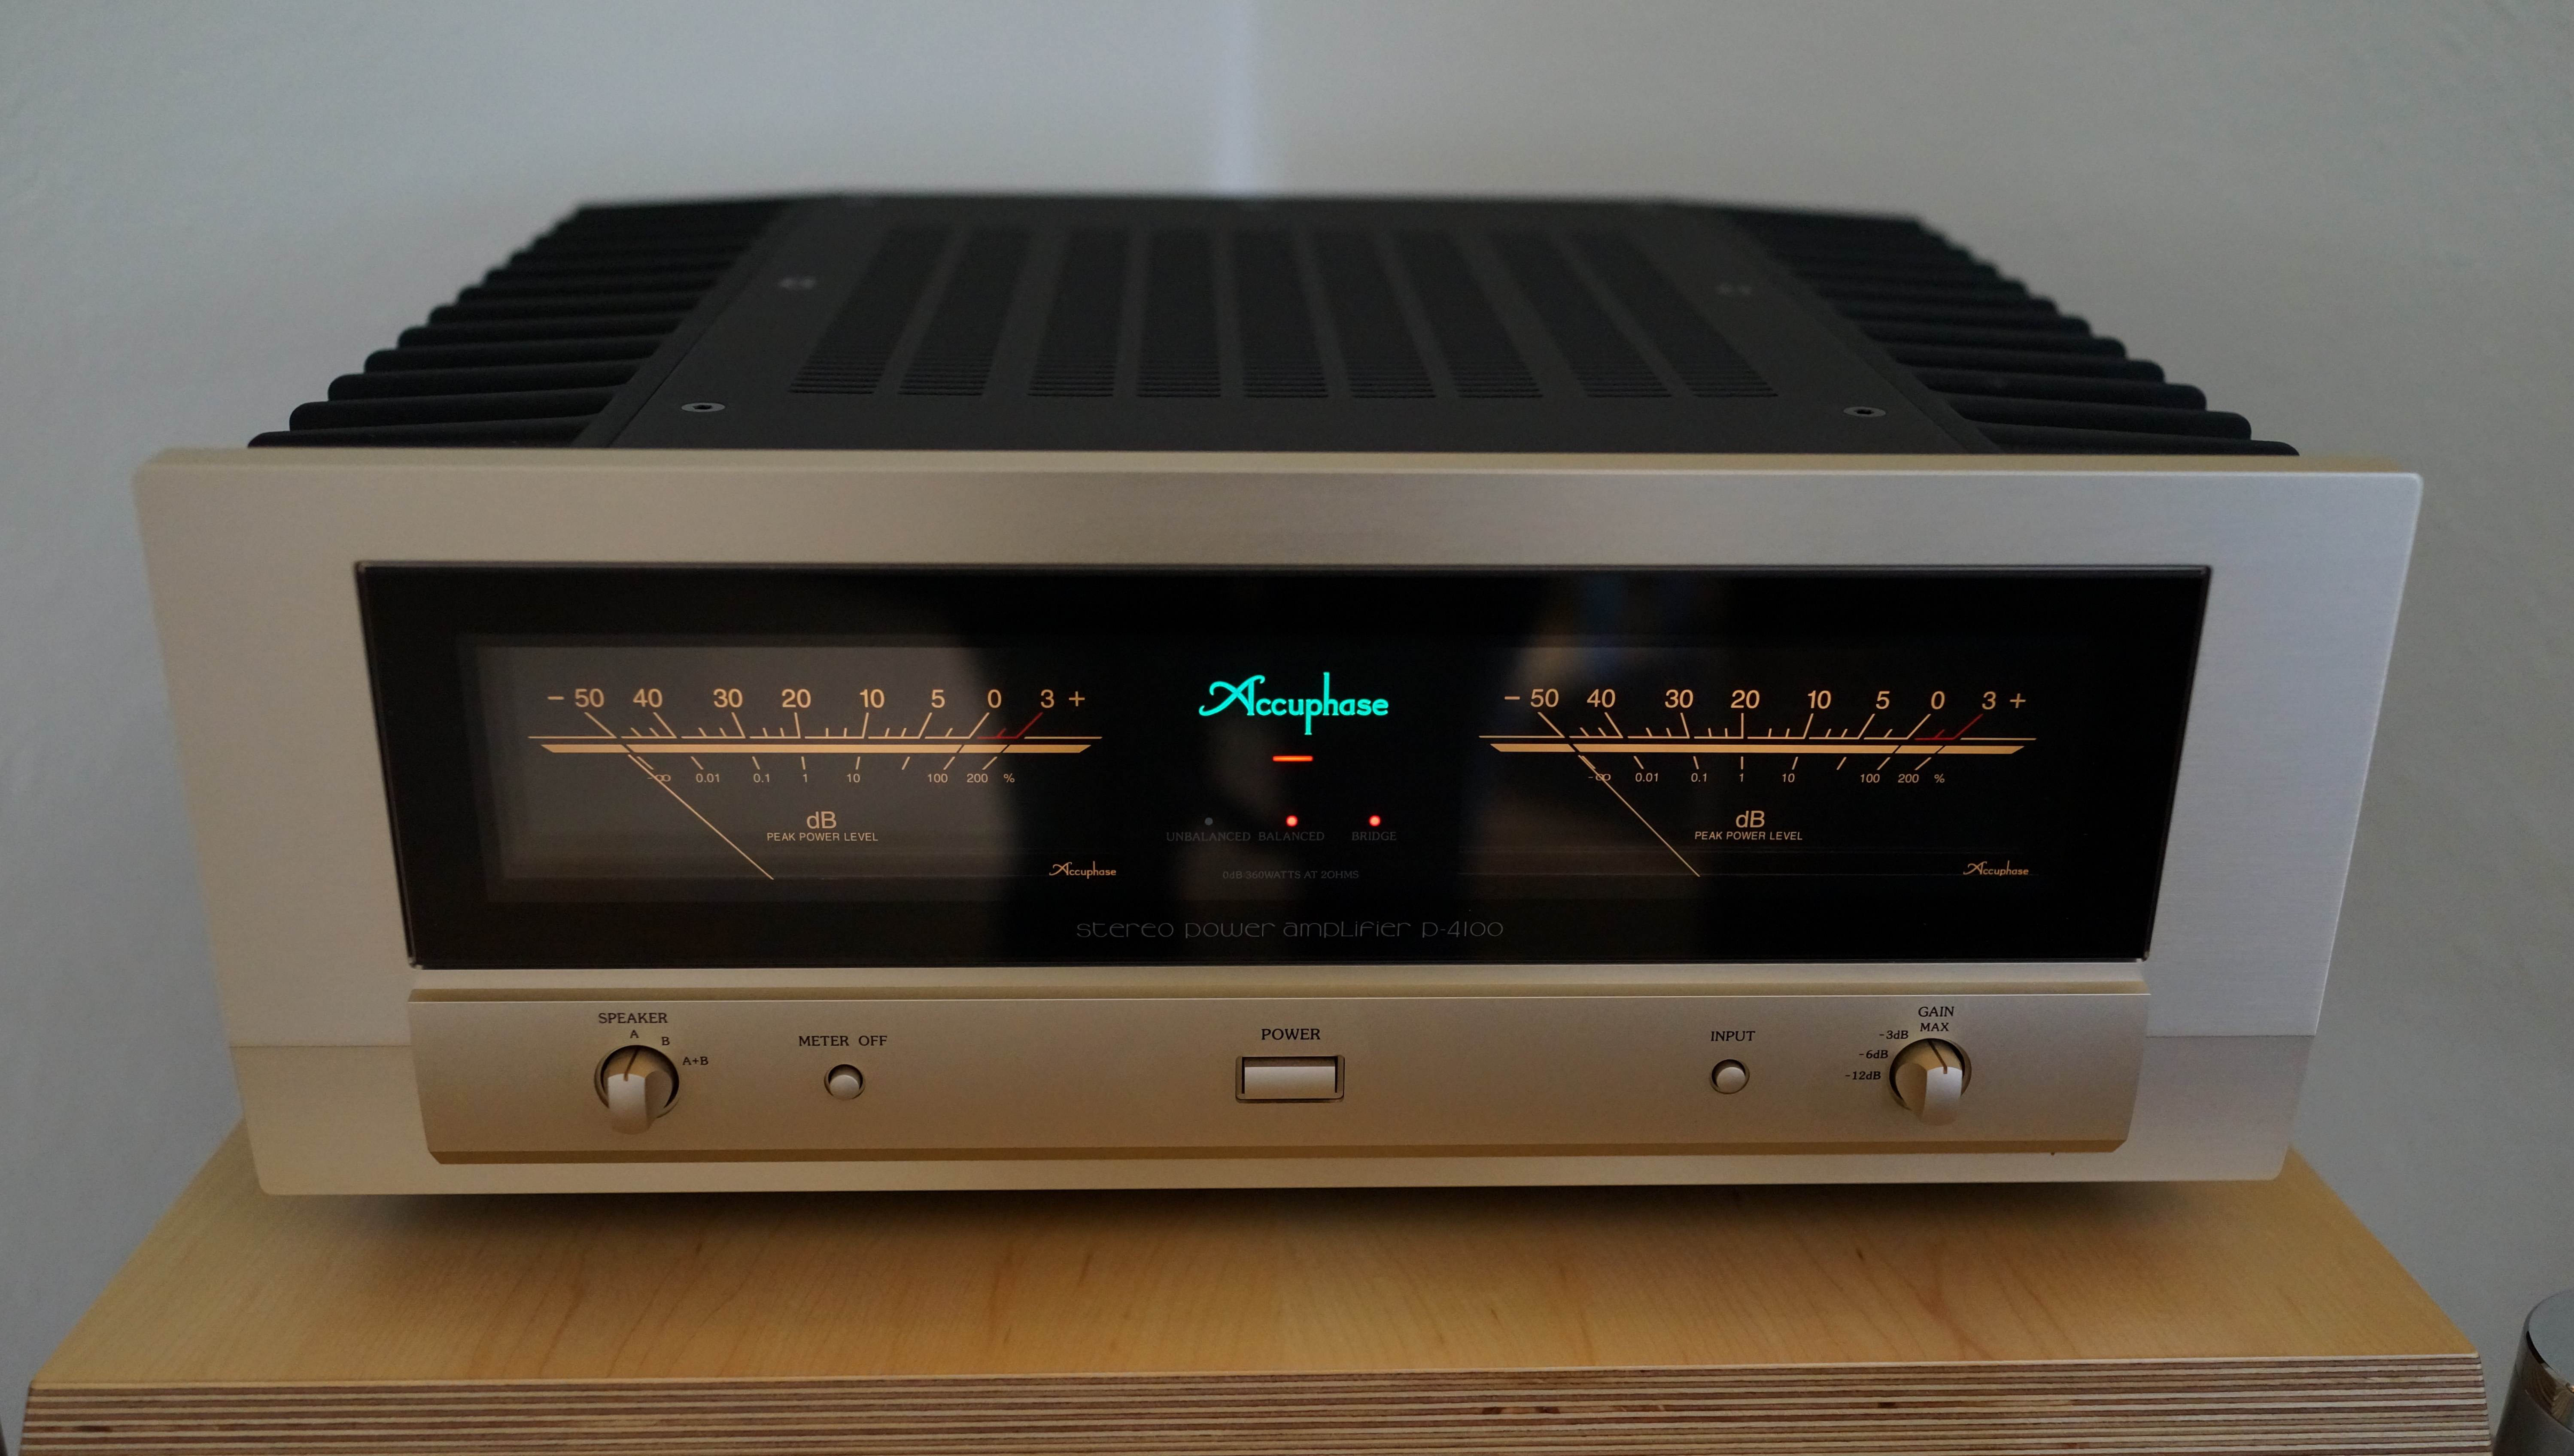 Accuphase P-6100 5